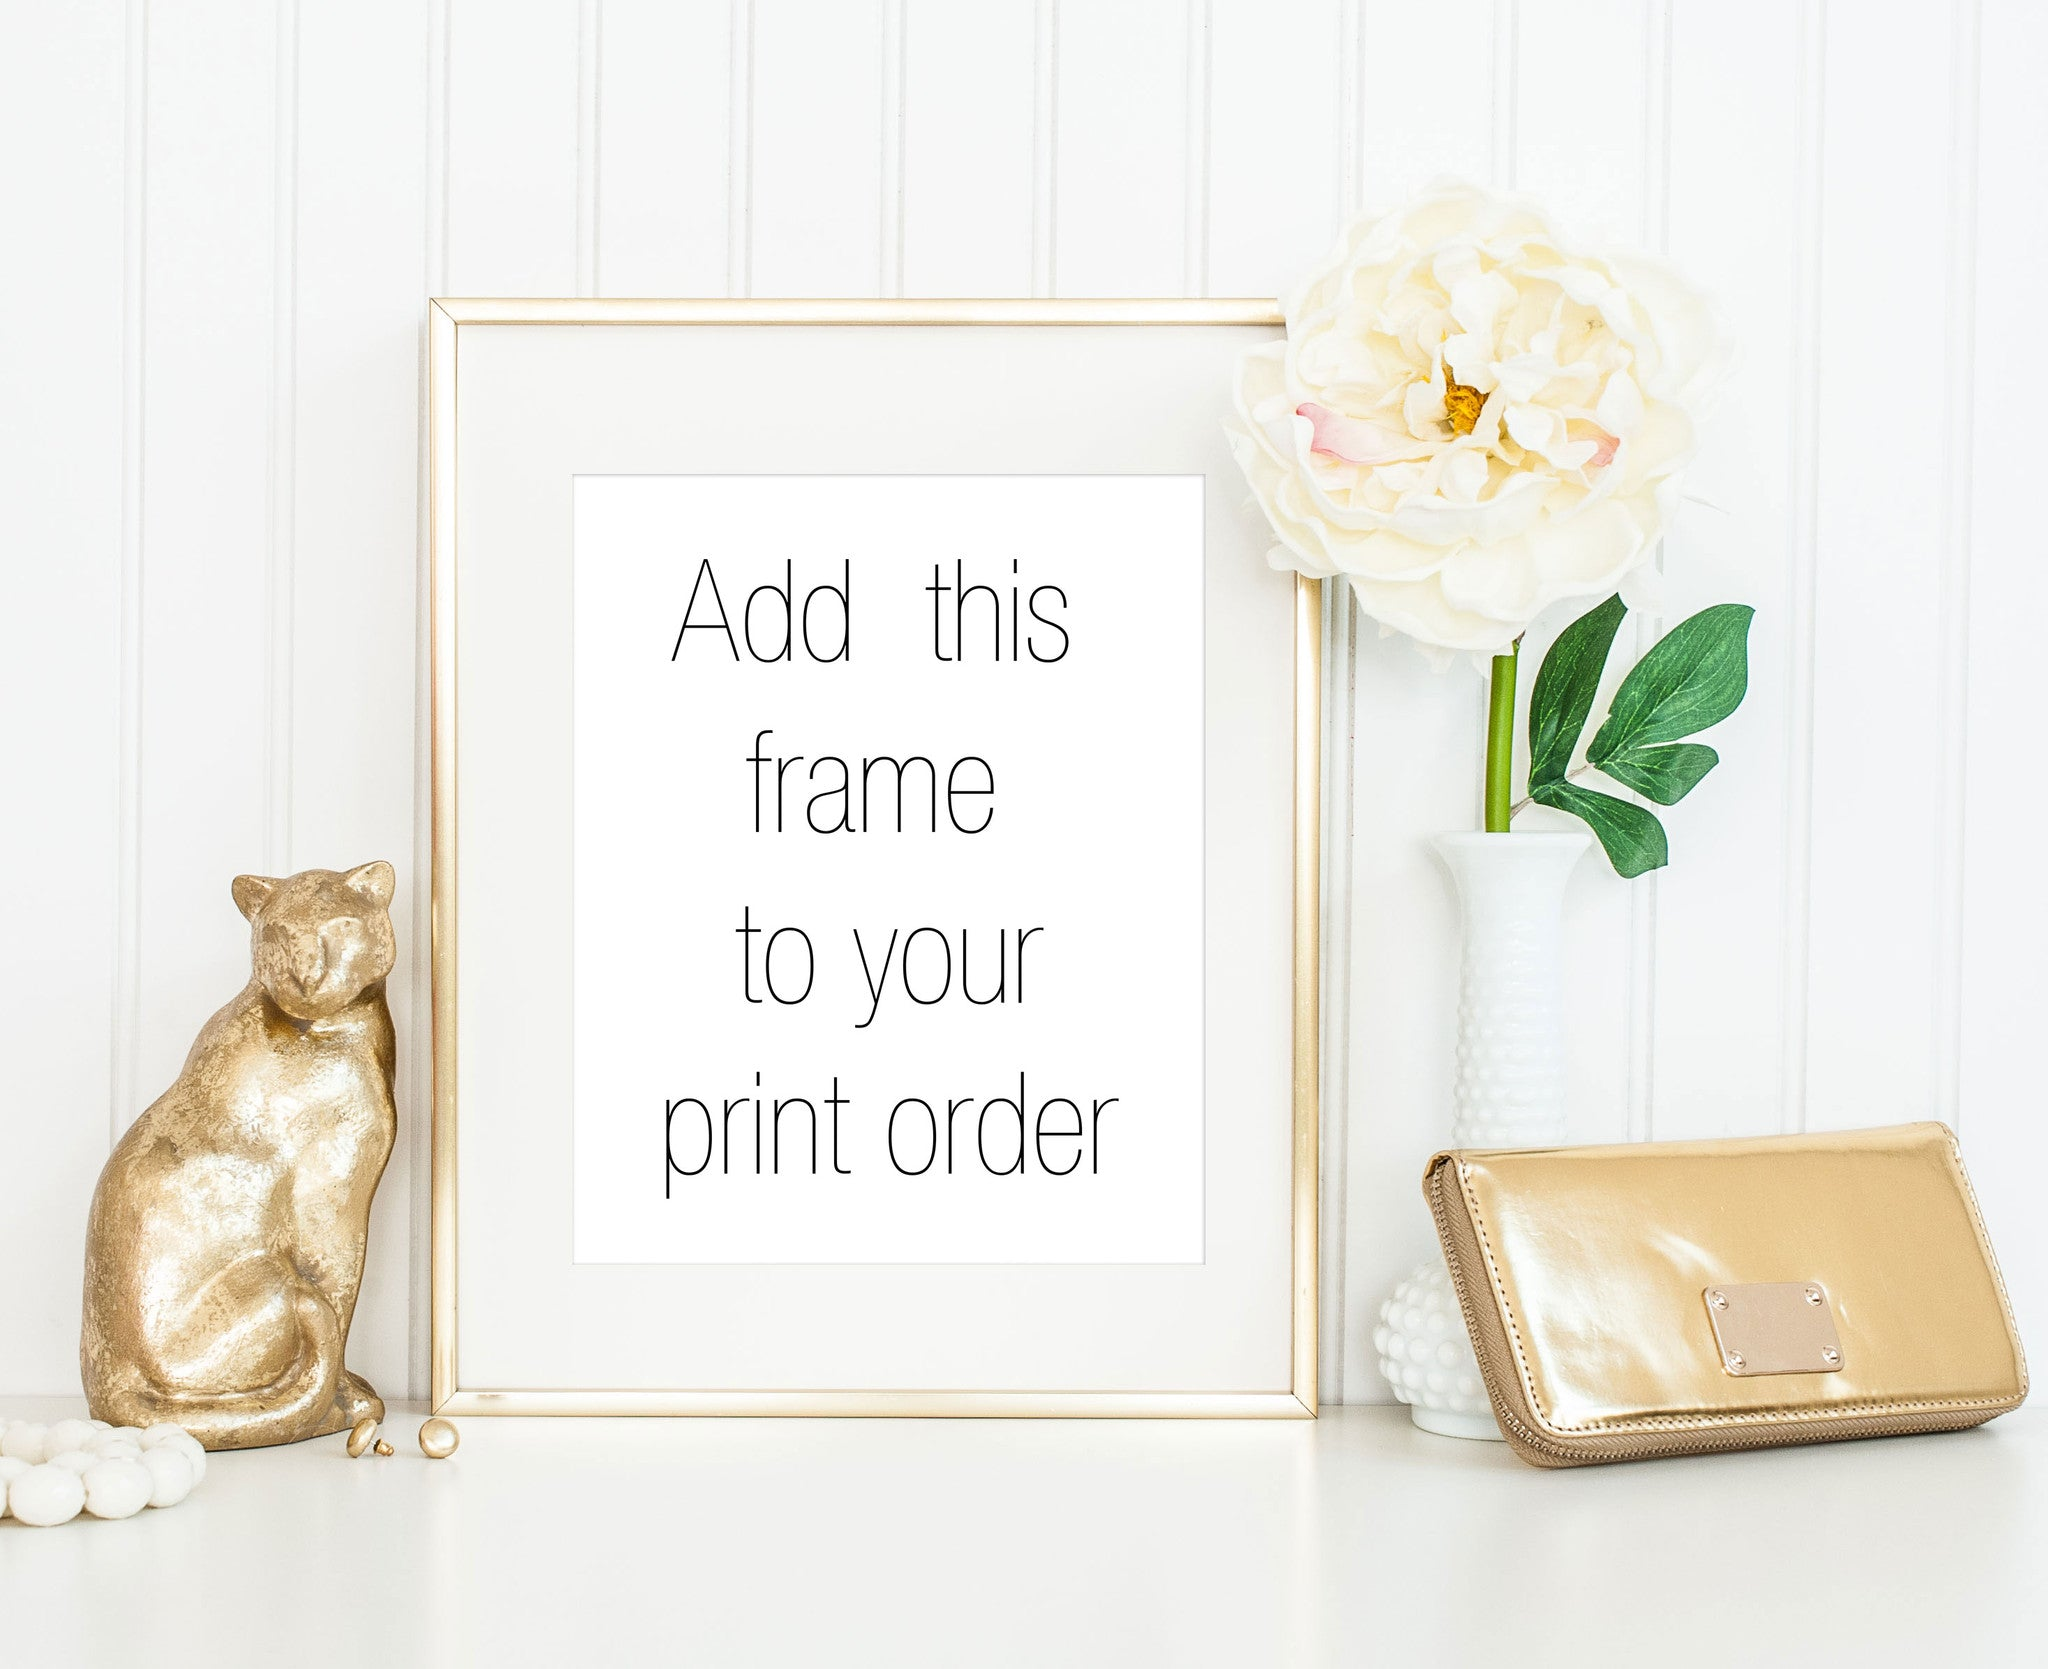 8x10 Thin Gold Frame